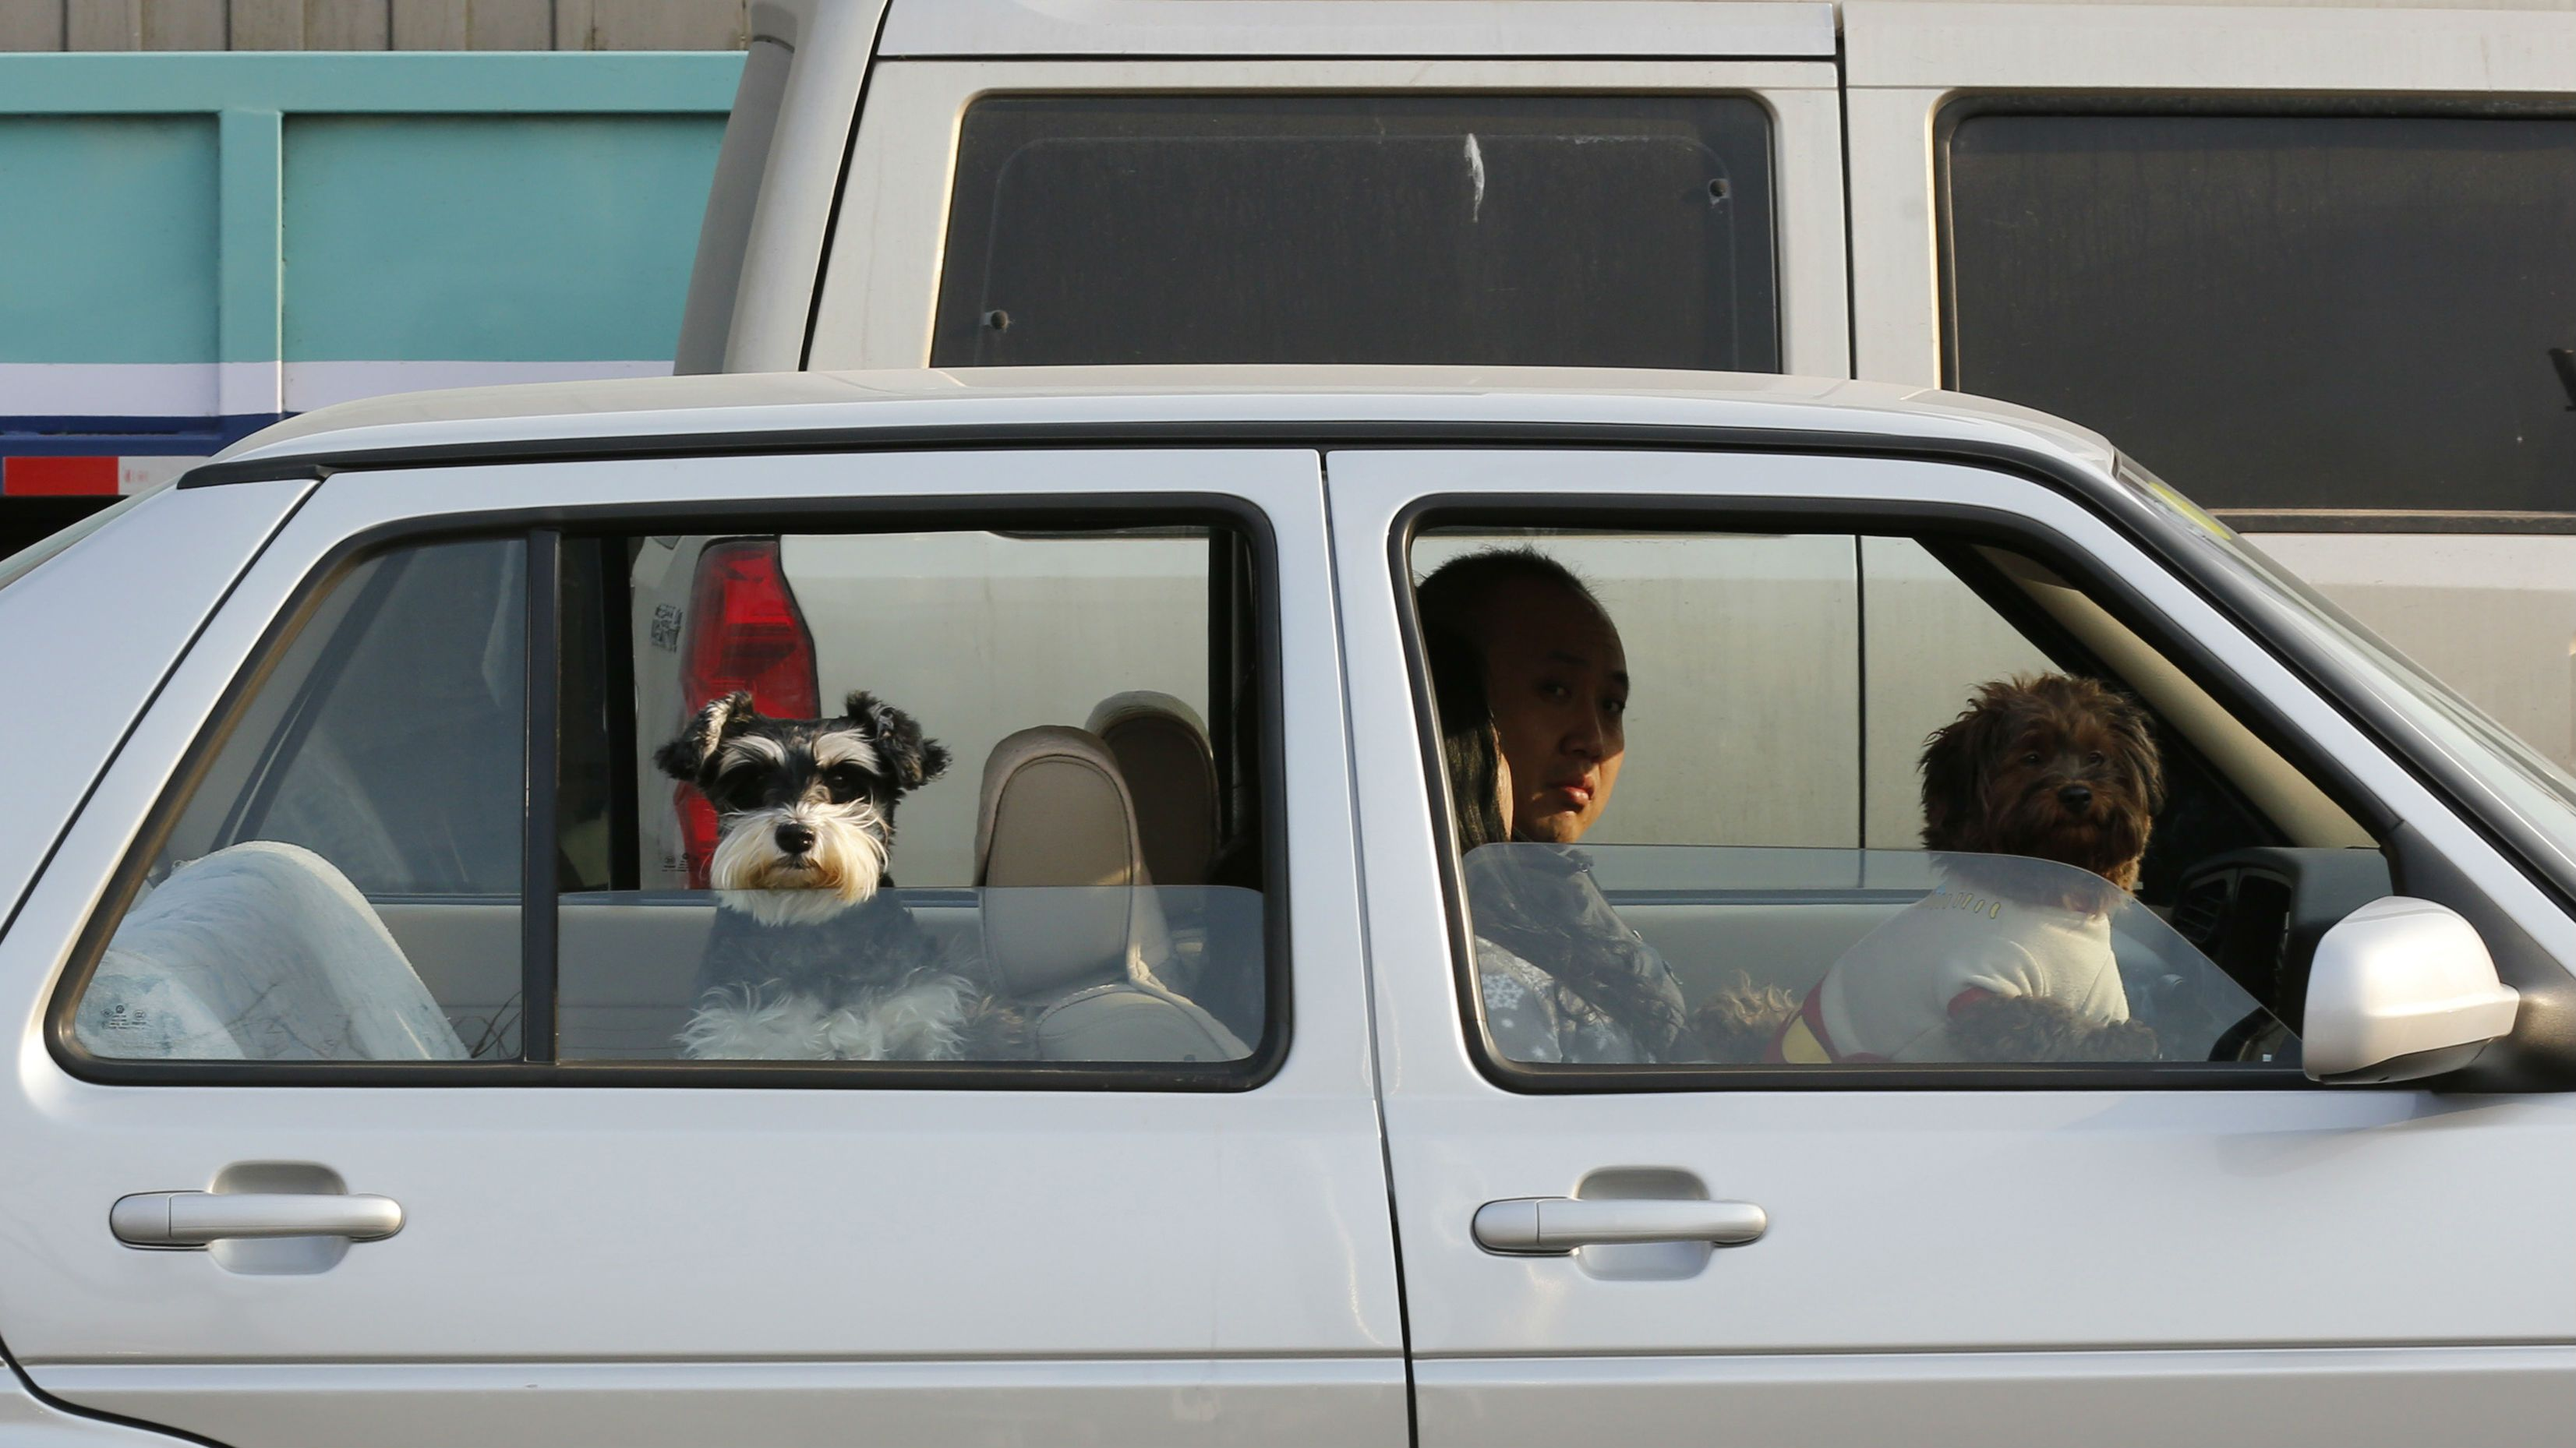 Pet dogs look out of the windows of their owners' car in Beijing February 15, 2013. REUTERS/Kim Kyung-Hoon (CHINA - Tags: ANNIVERSARY SOCIETY ANIMALS TRANSPORT)